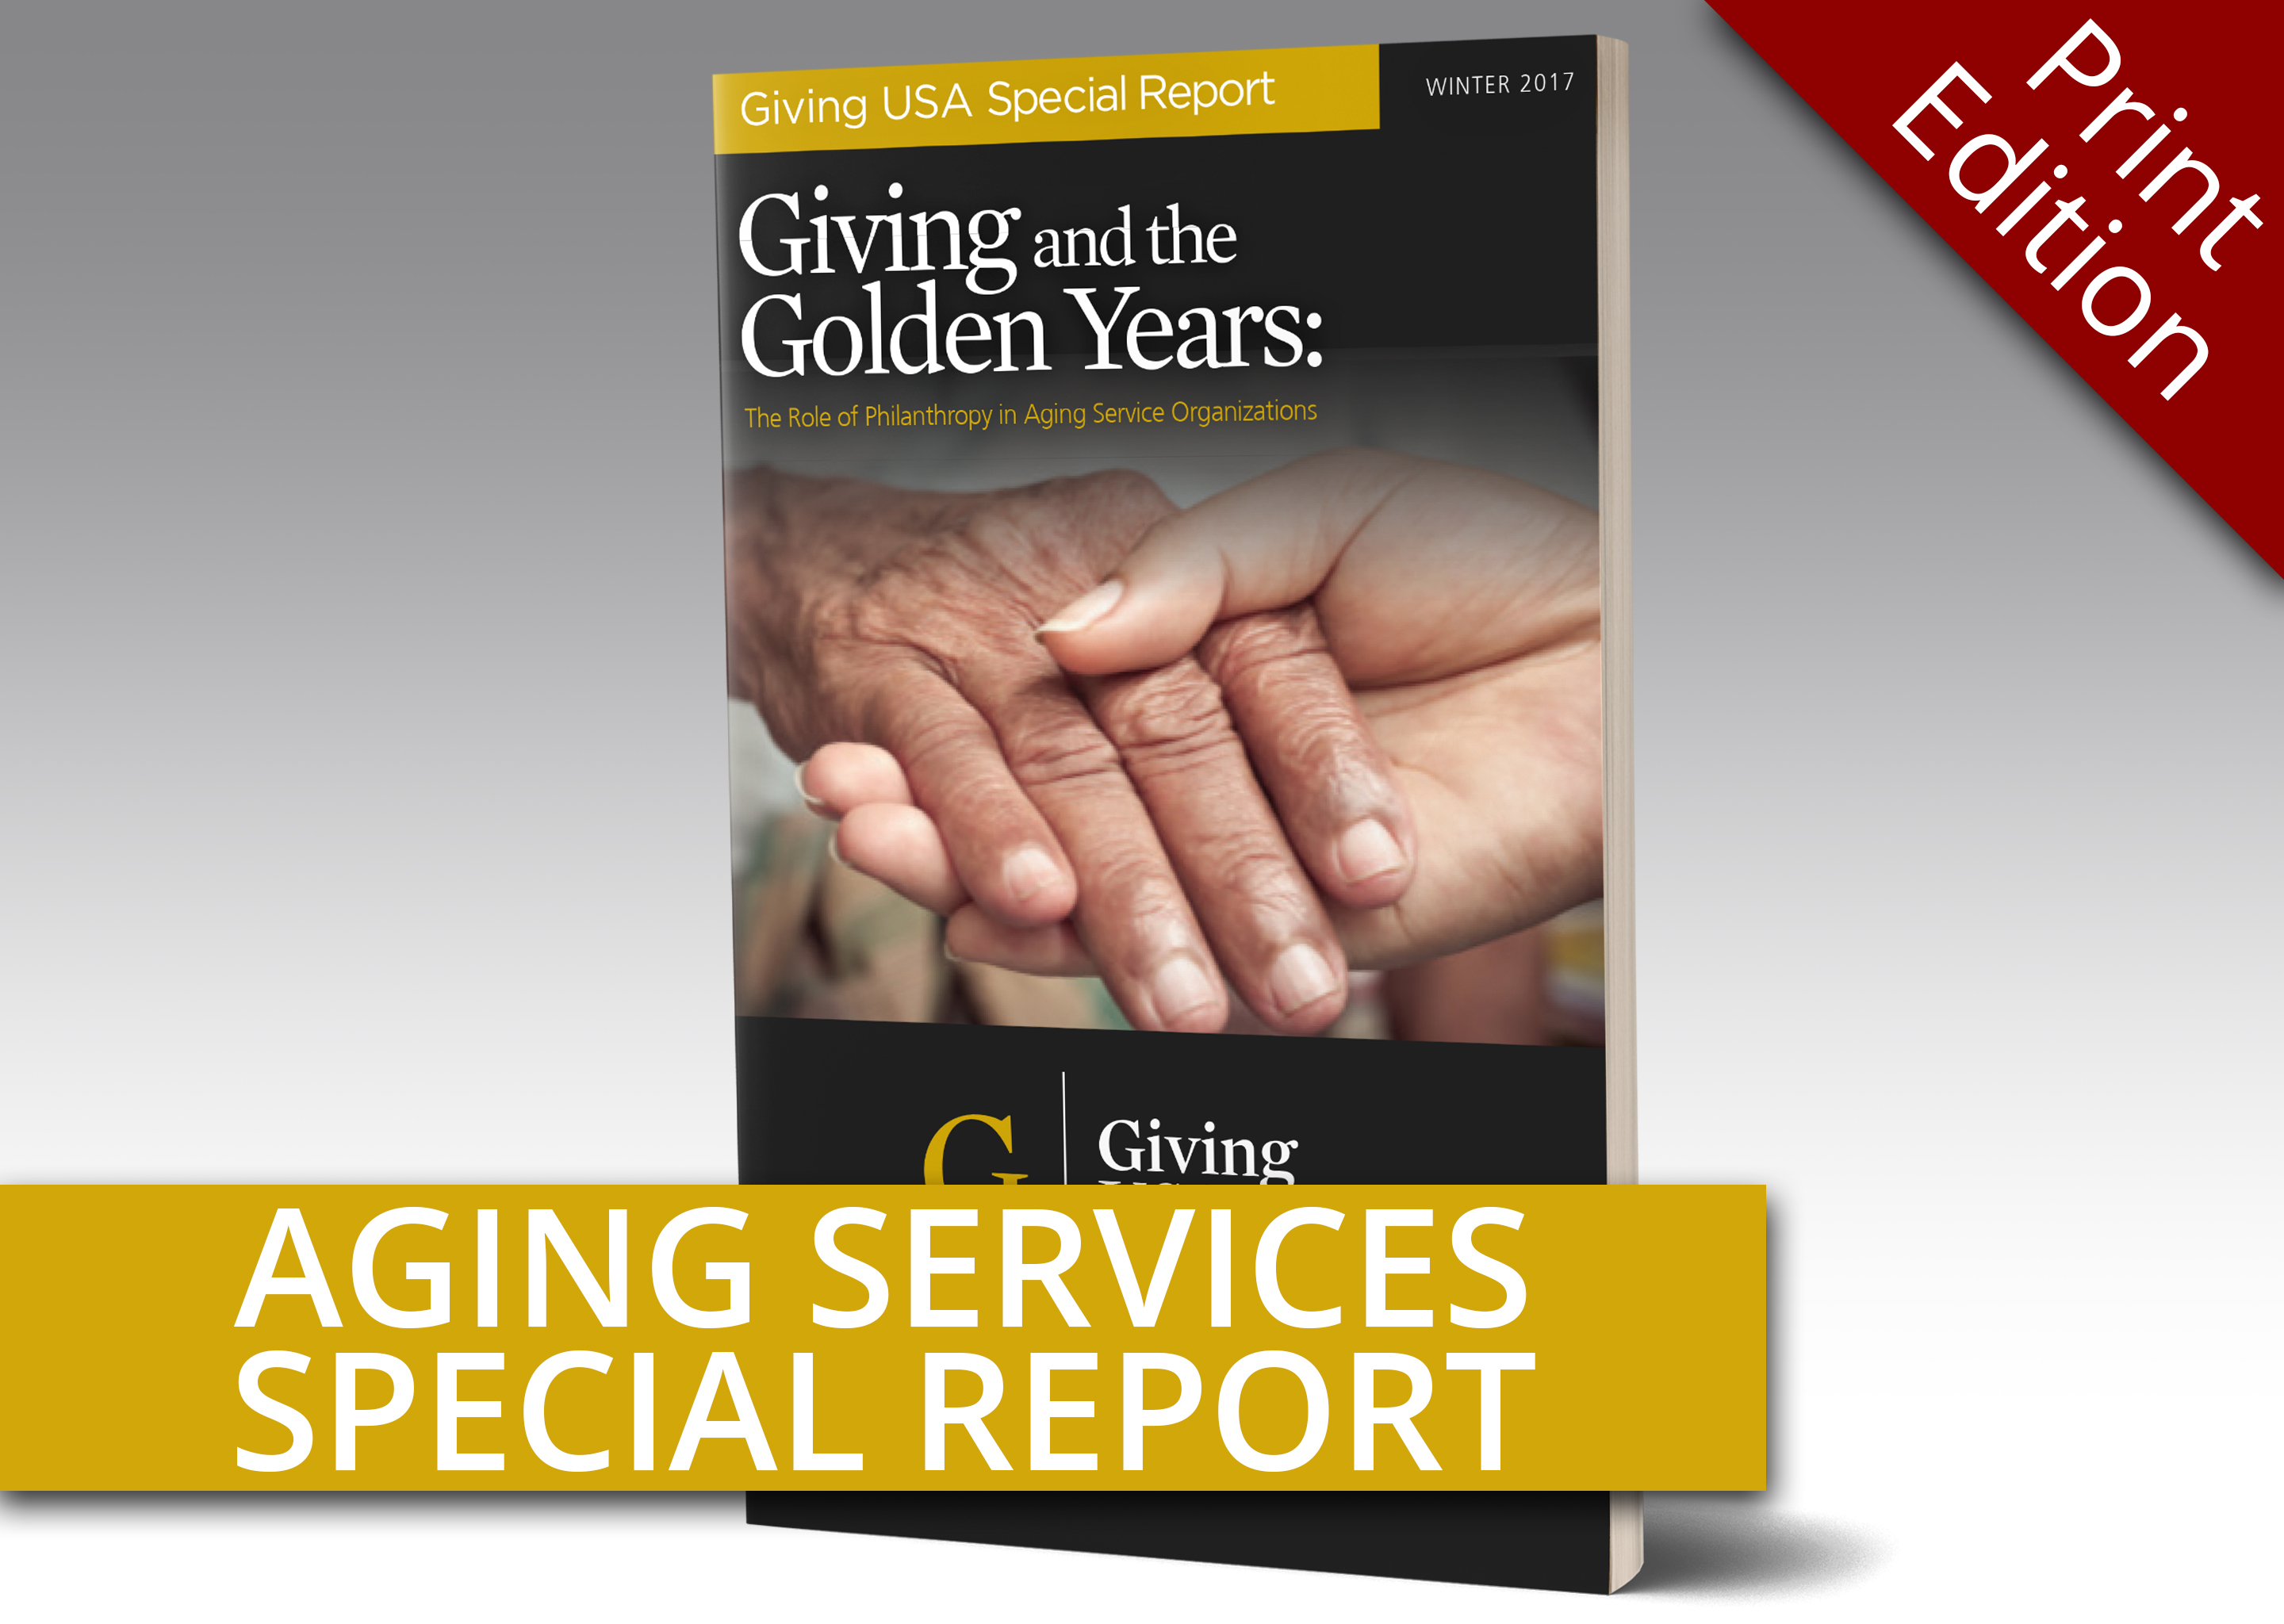 Aging Services Special Report